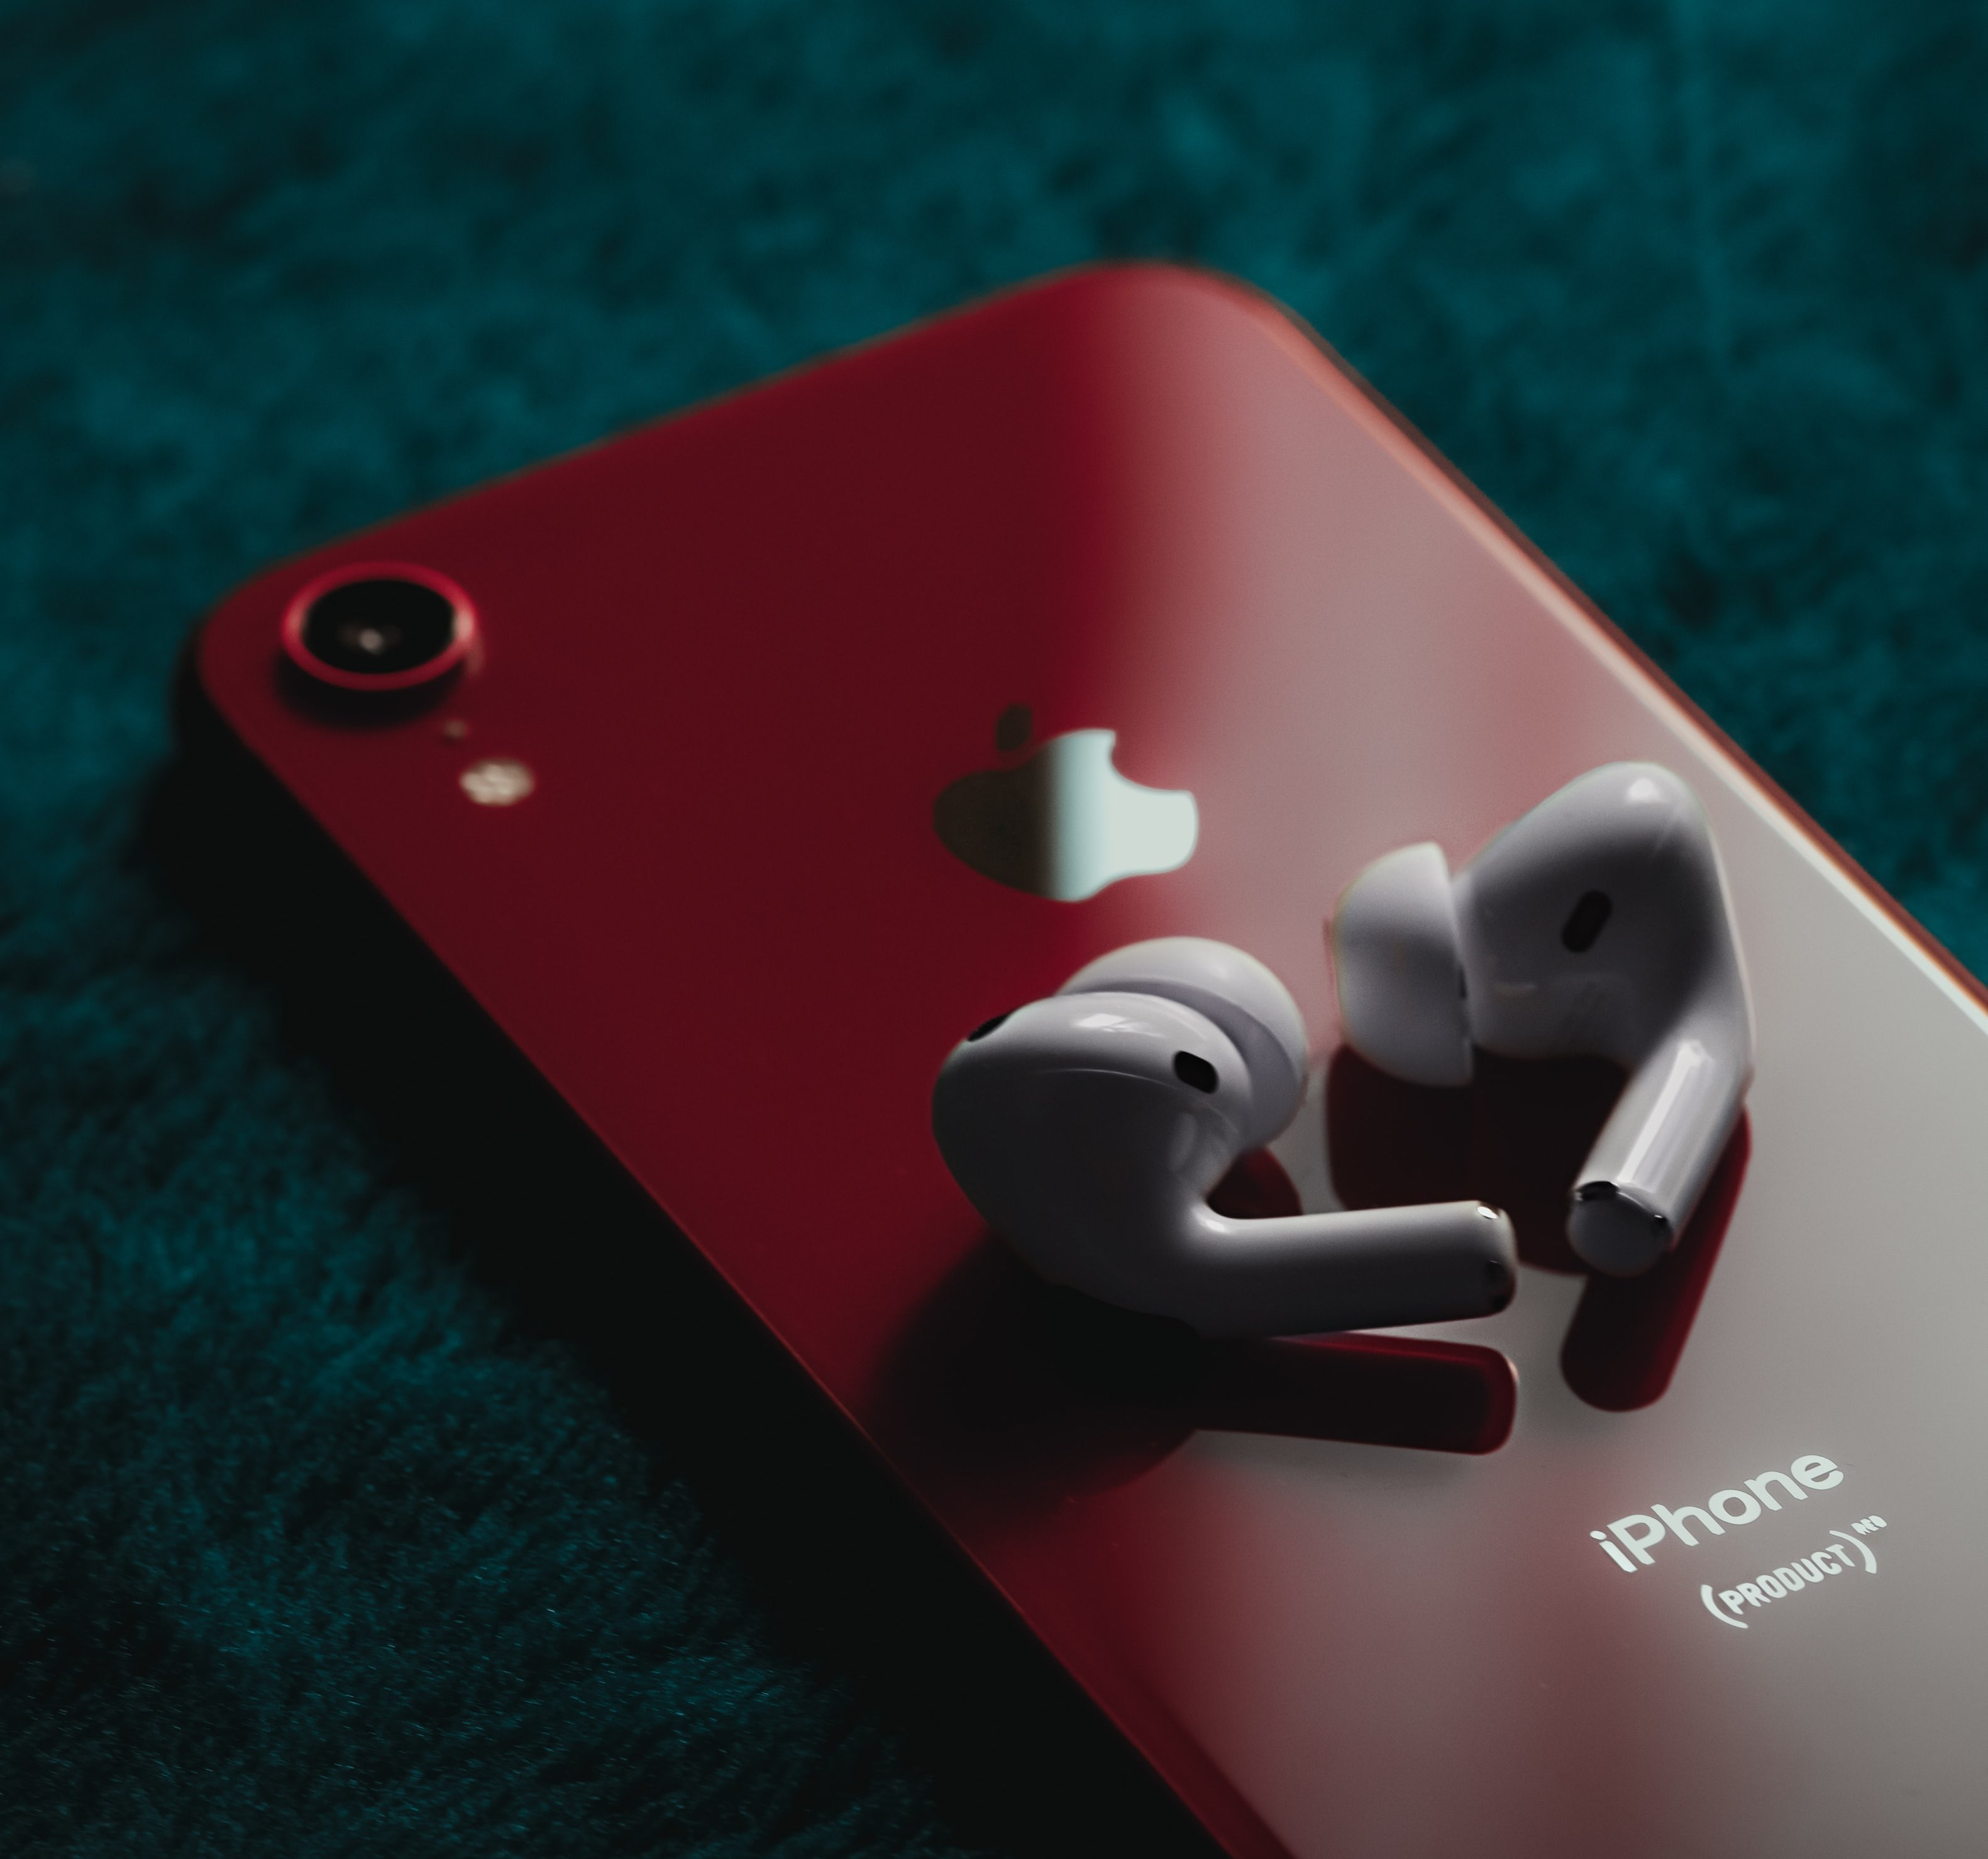 iPhone Product Red back AirPods white